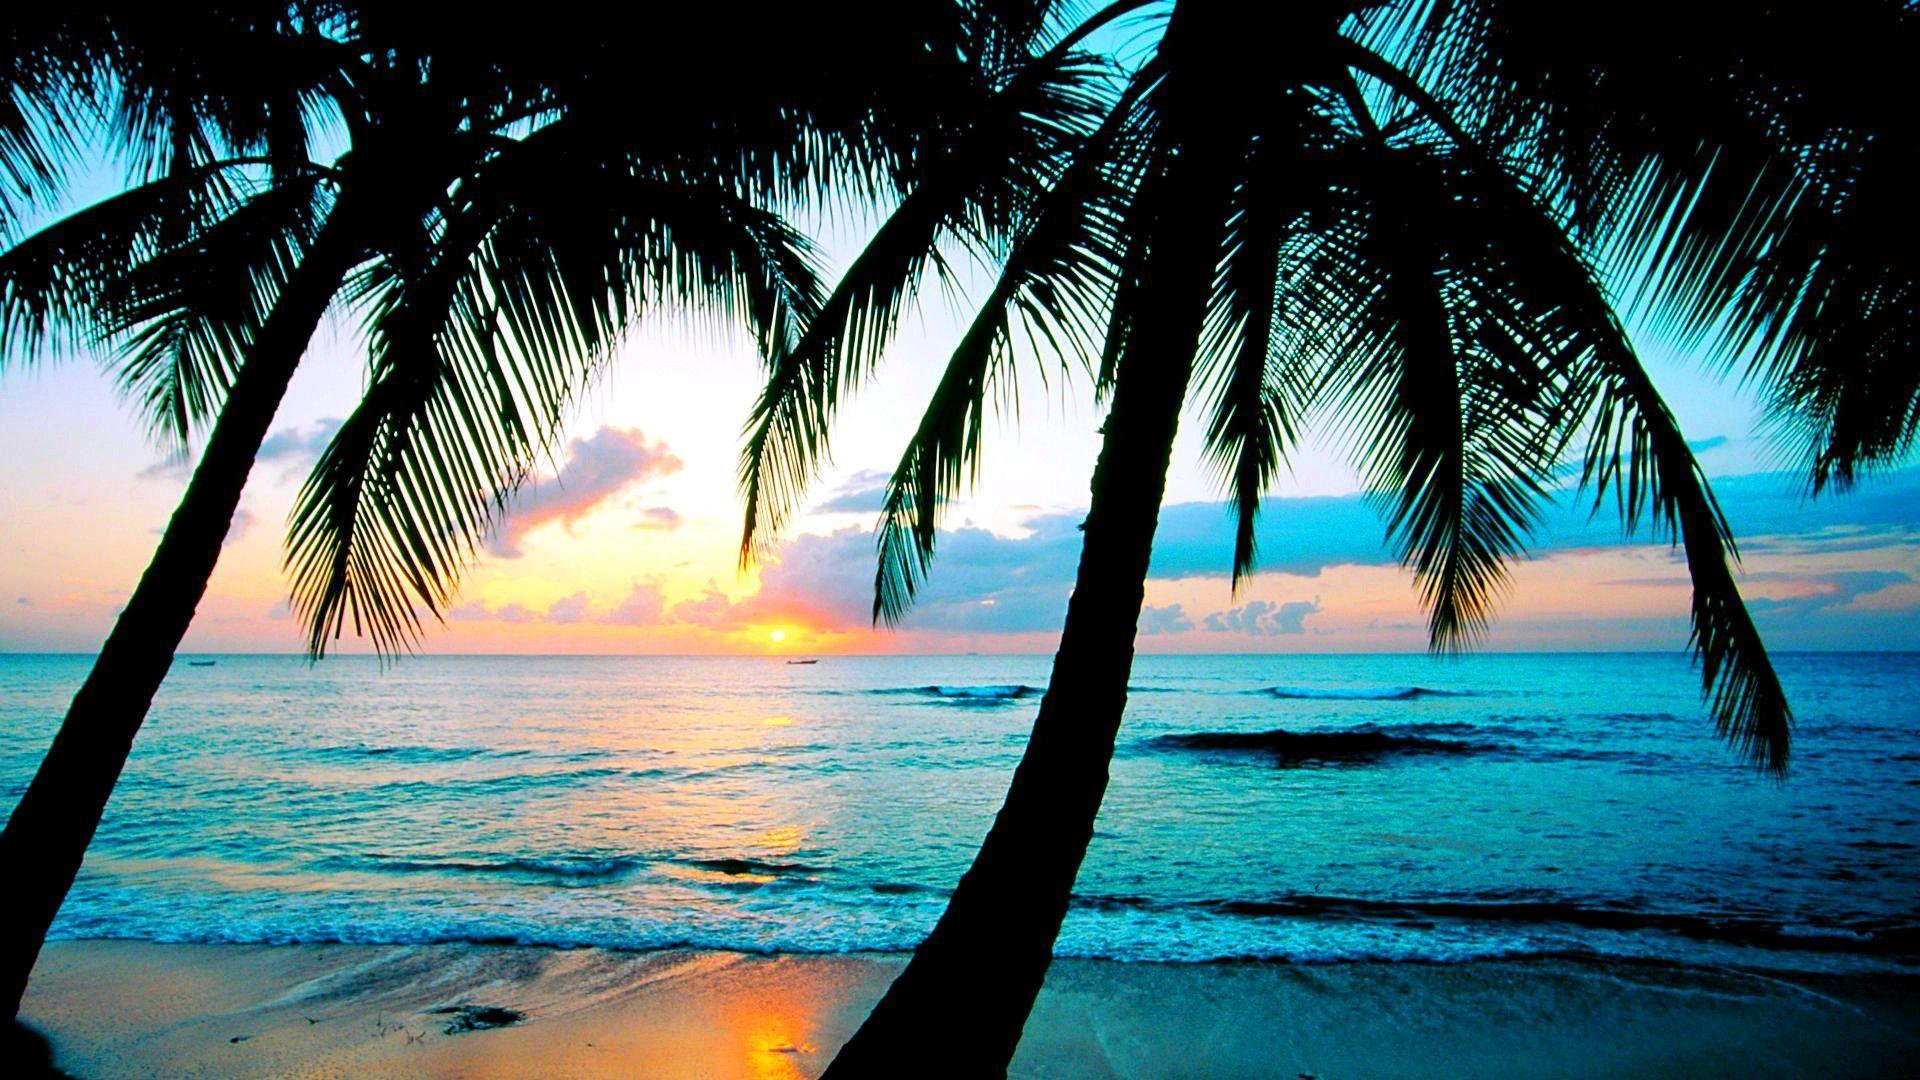 beach wallpapers - binfind Search Engine